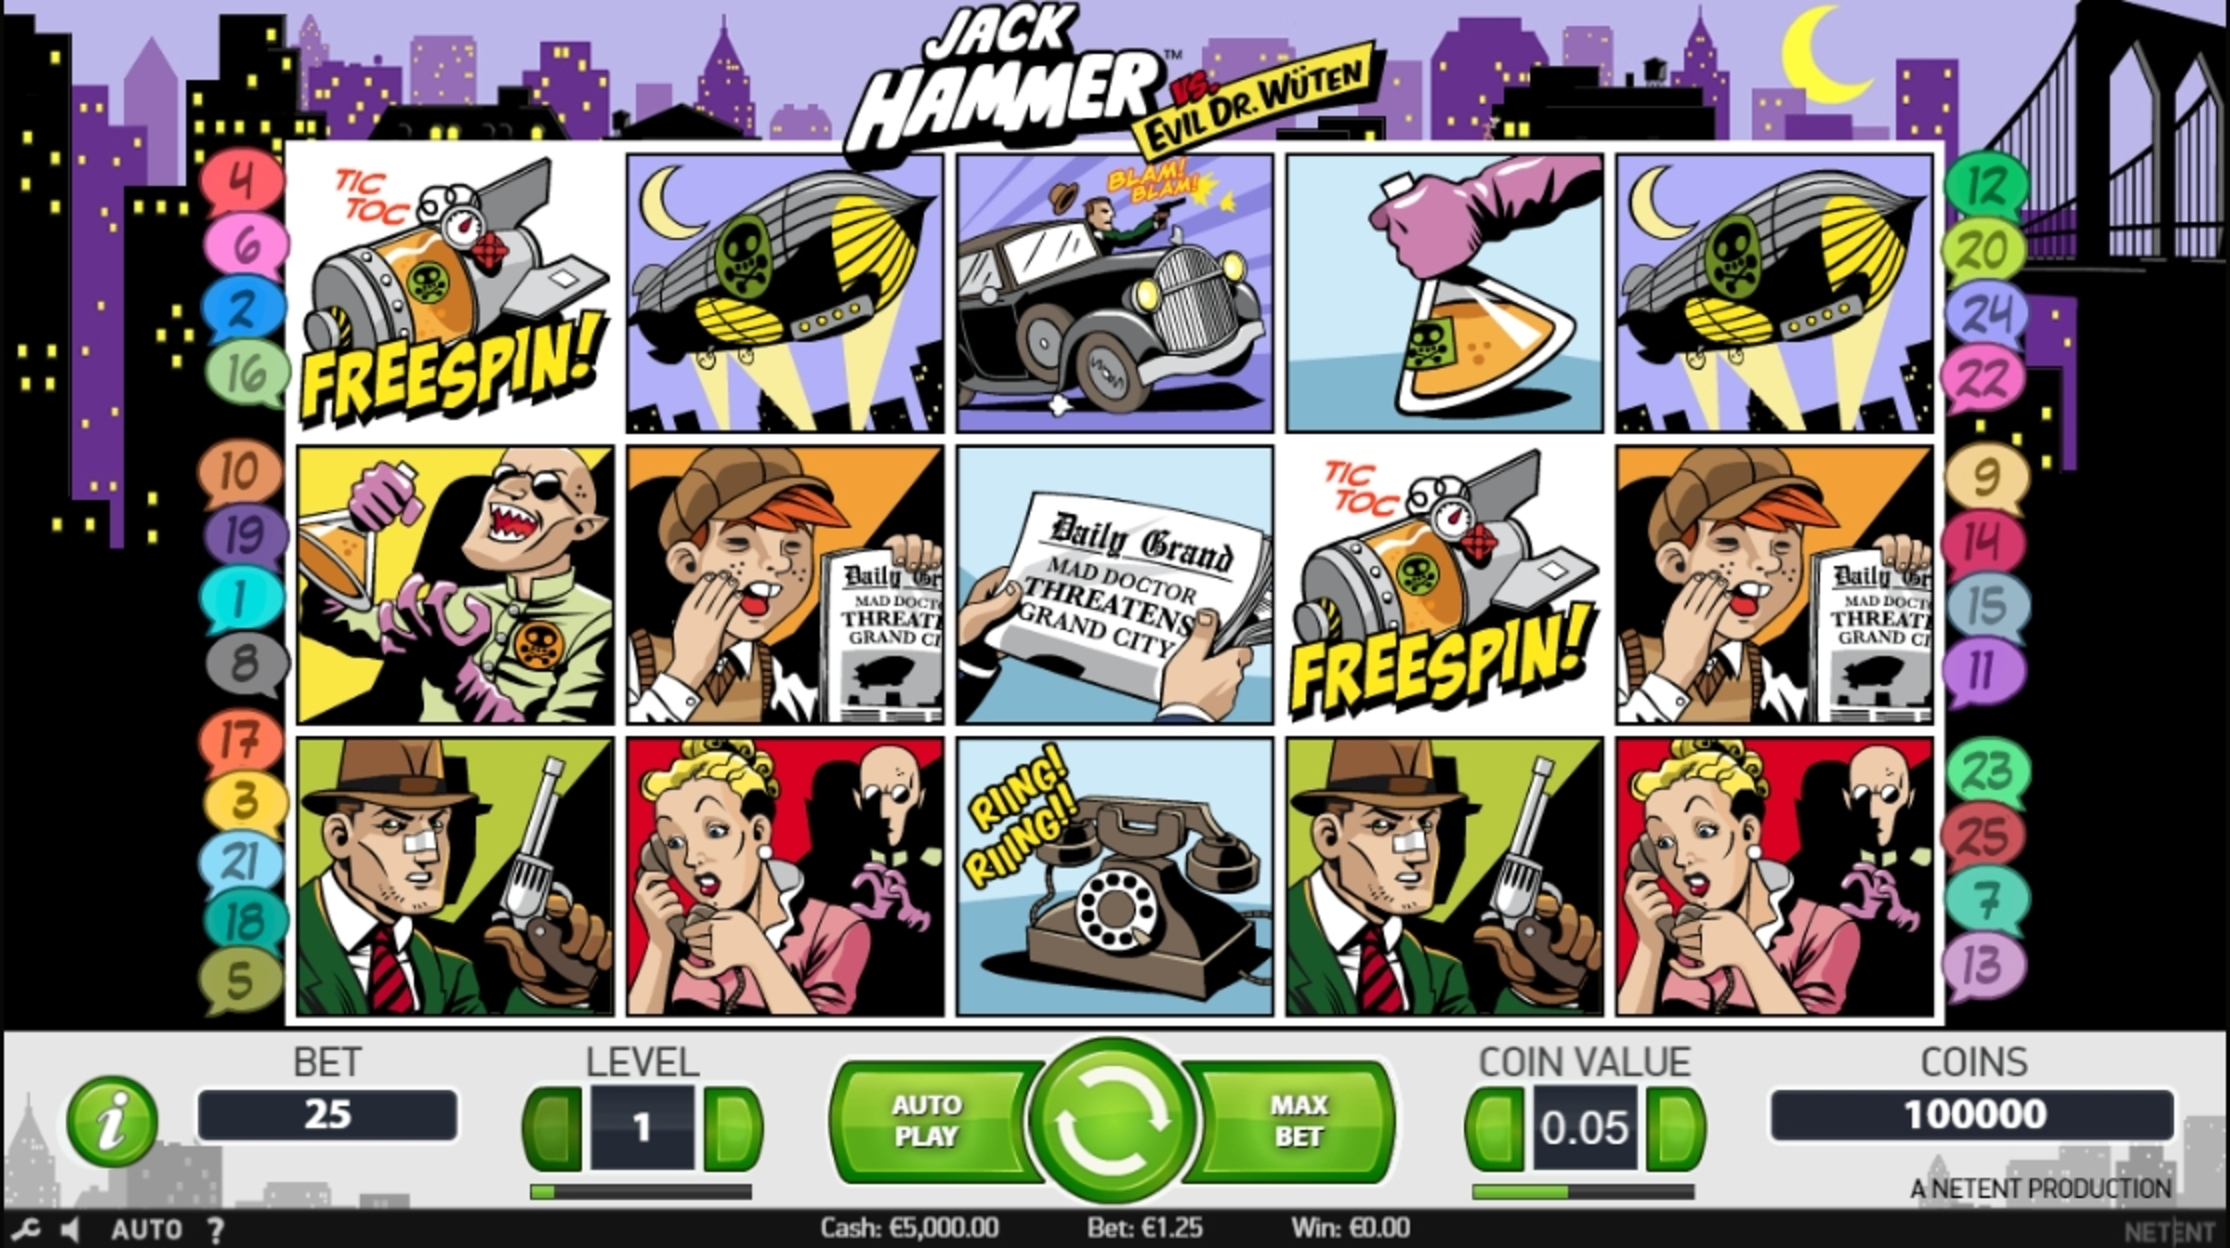 Reels in Jack Hammer Slot Game by NetEnt